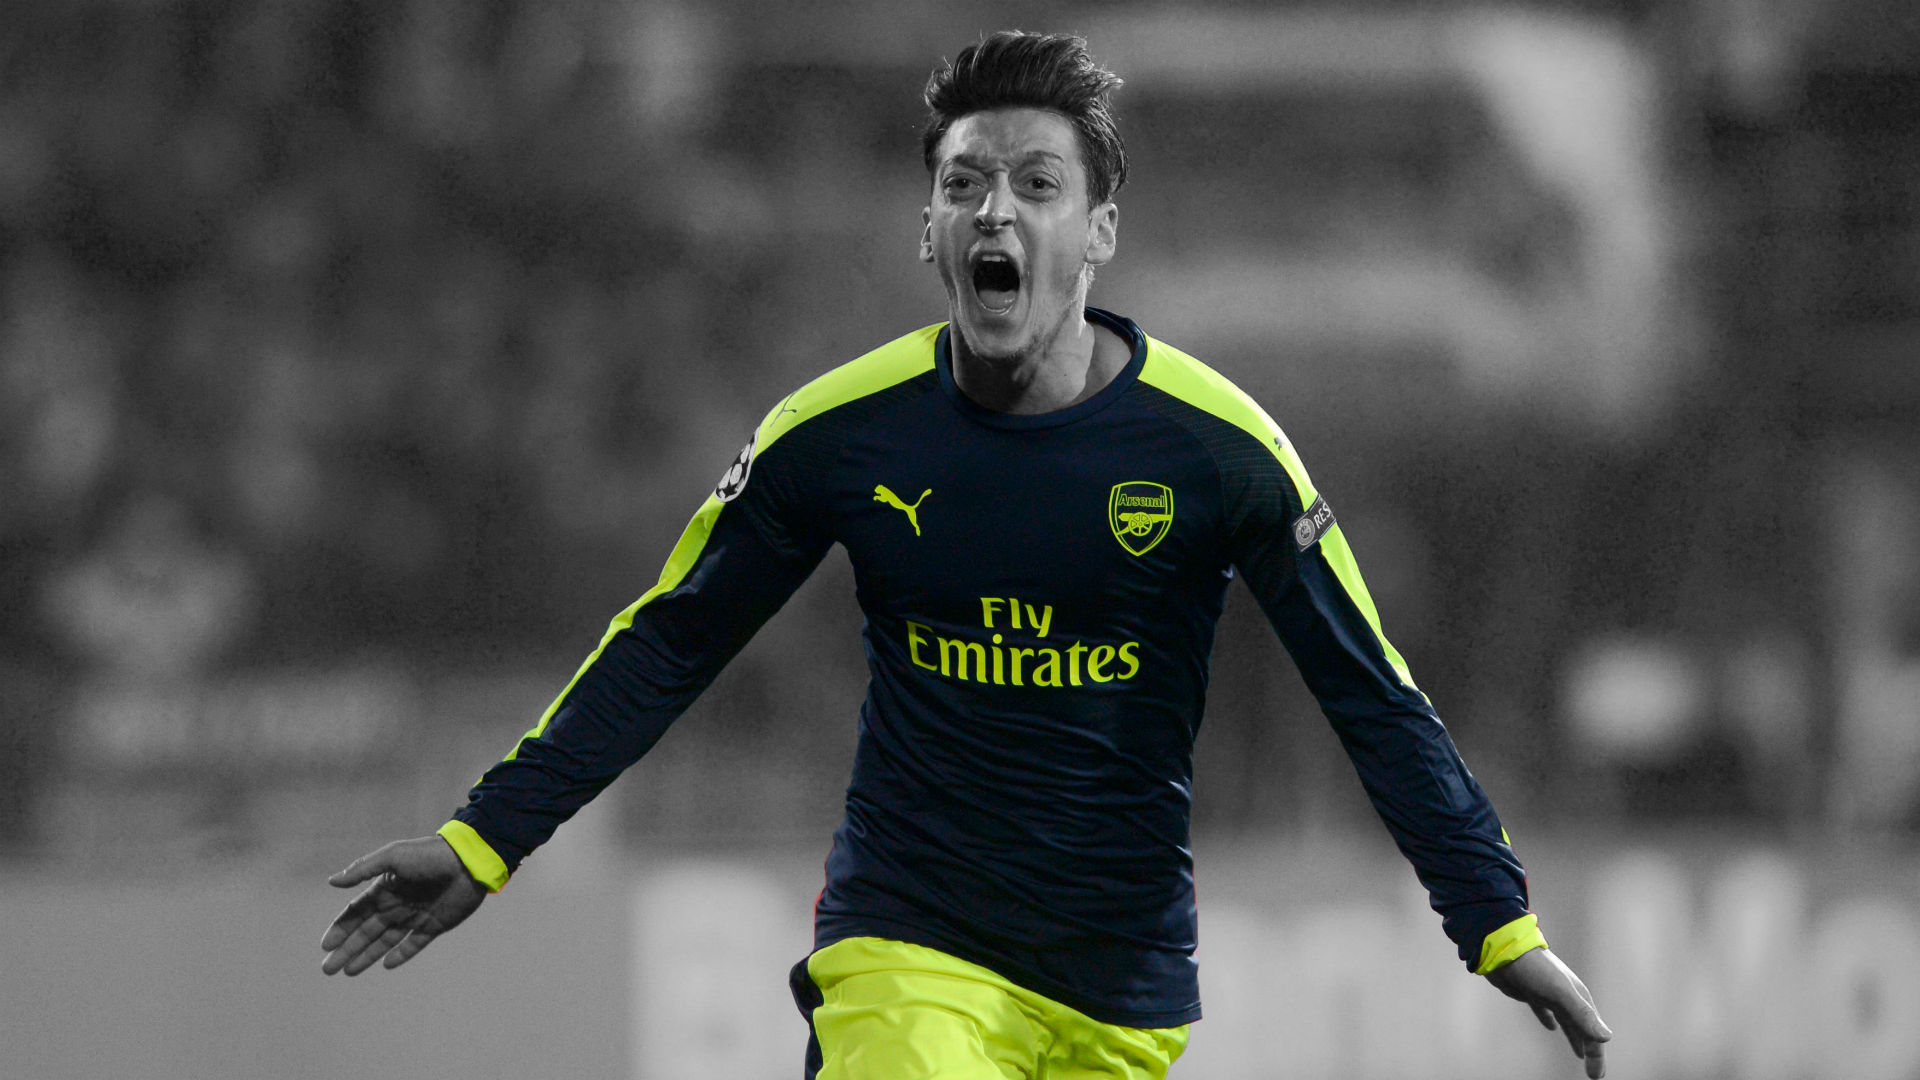 Arsenal Are Very Lucky To Have World Class Ozil, Says Boateng